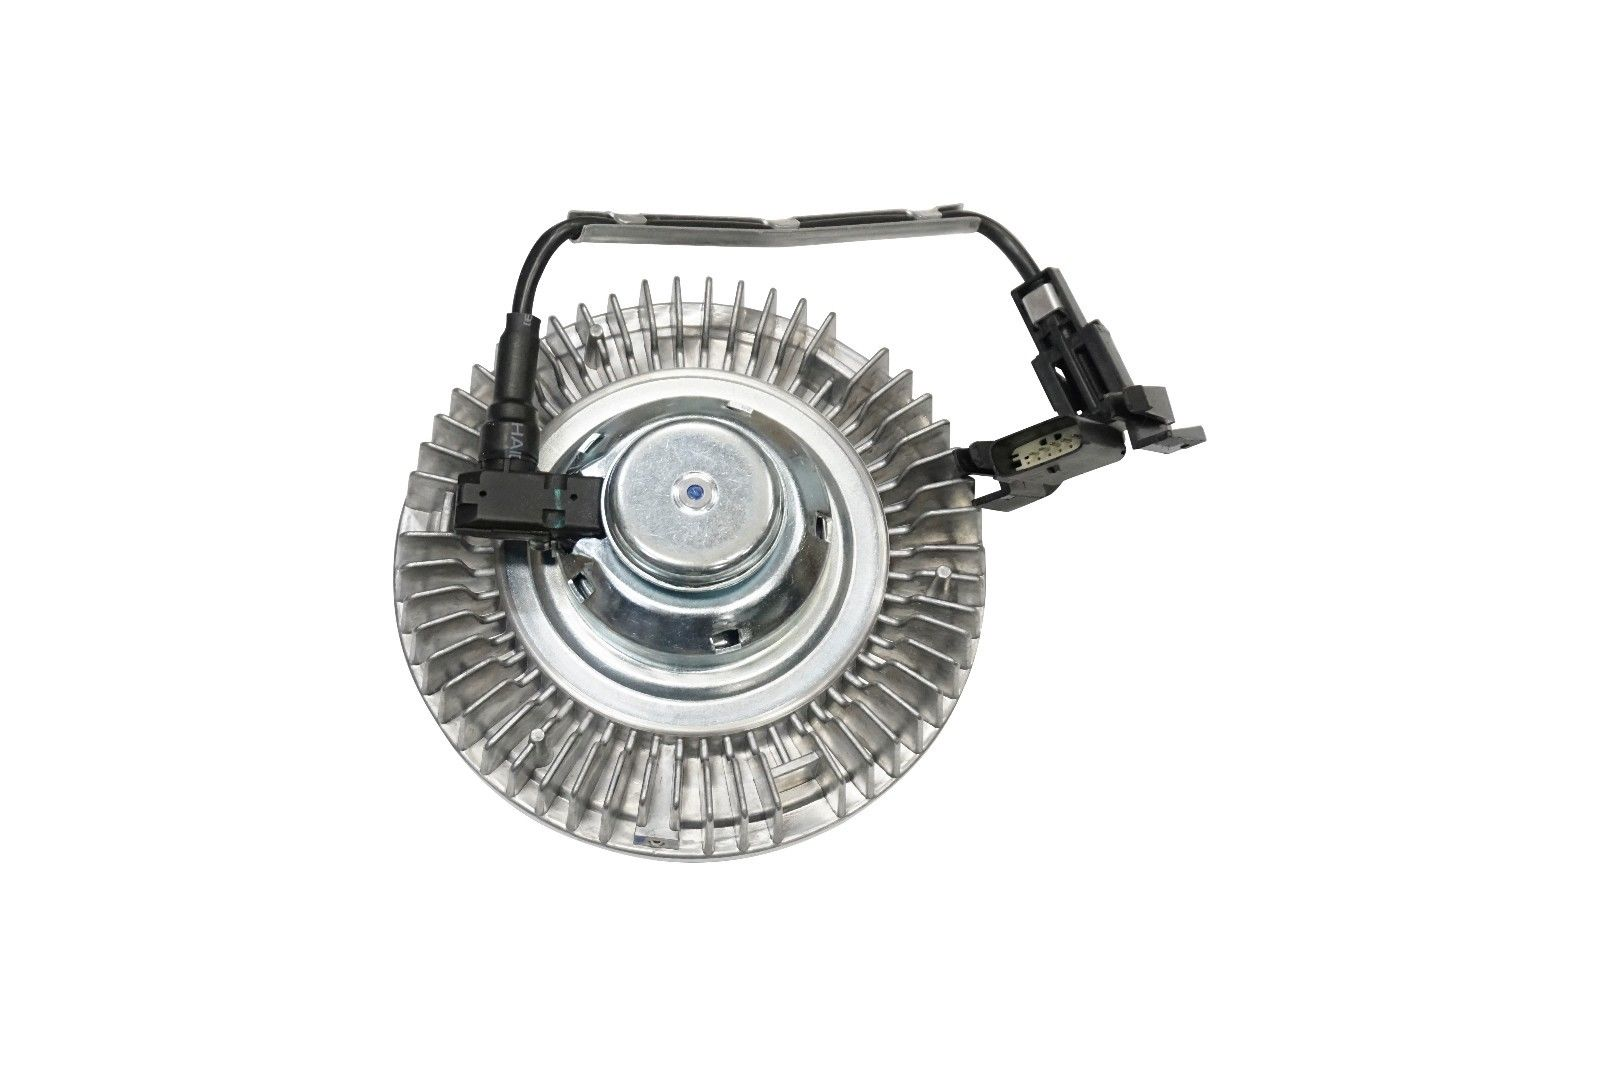 Engine Fan Clutch for 08-10 6.4L Powerstroke